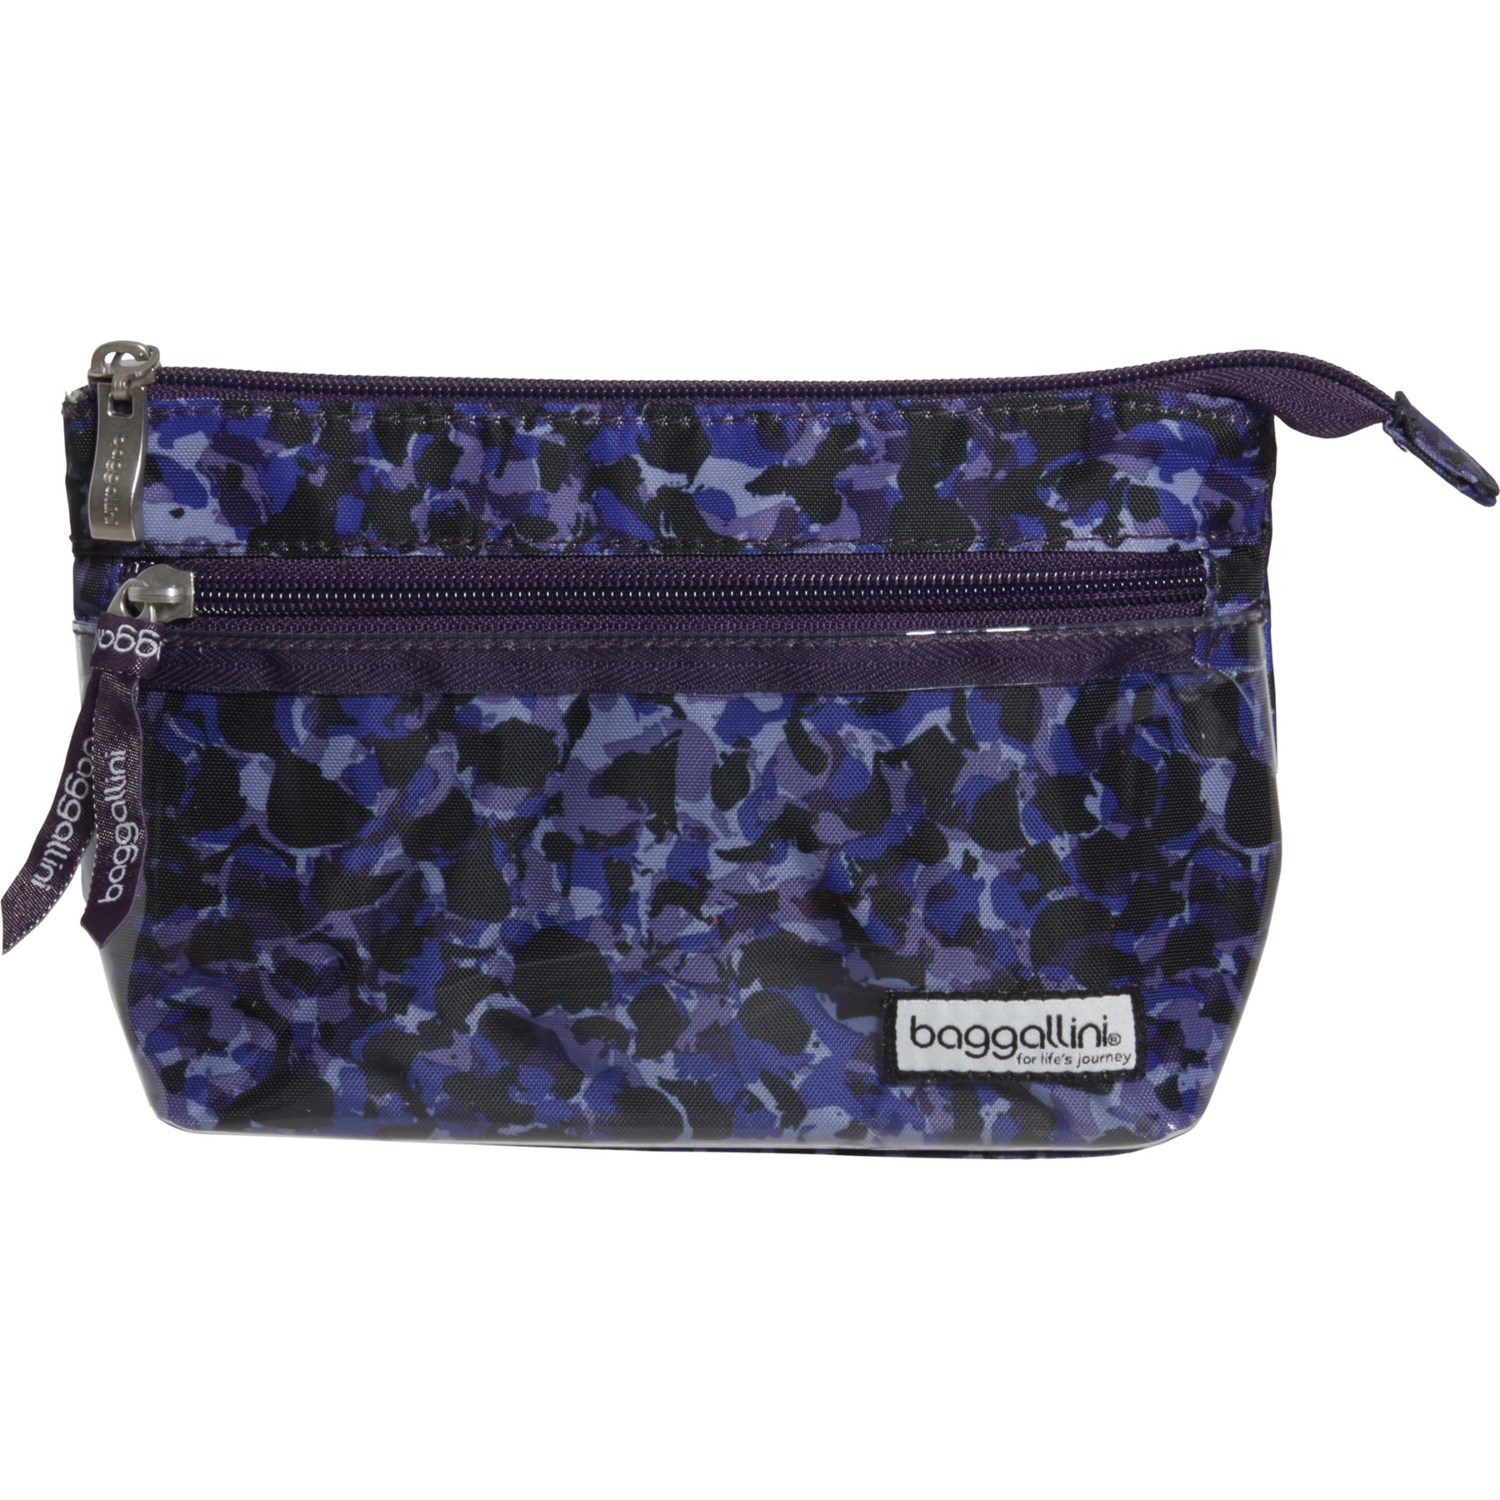 Baggallini Cosmetic Pouch For Women